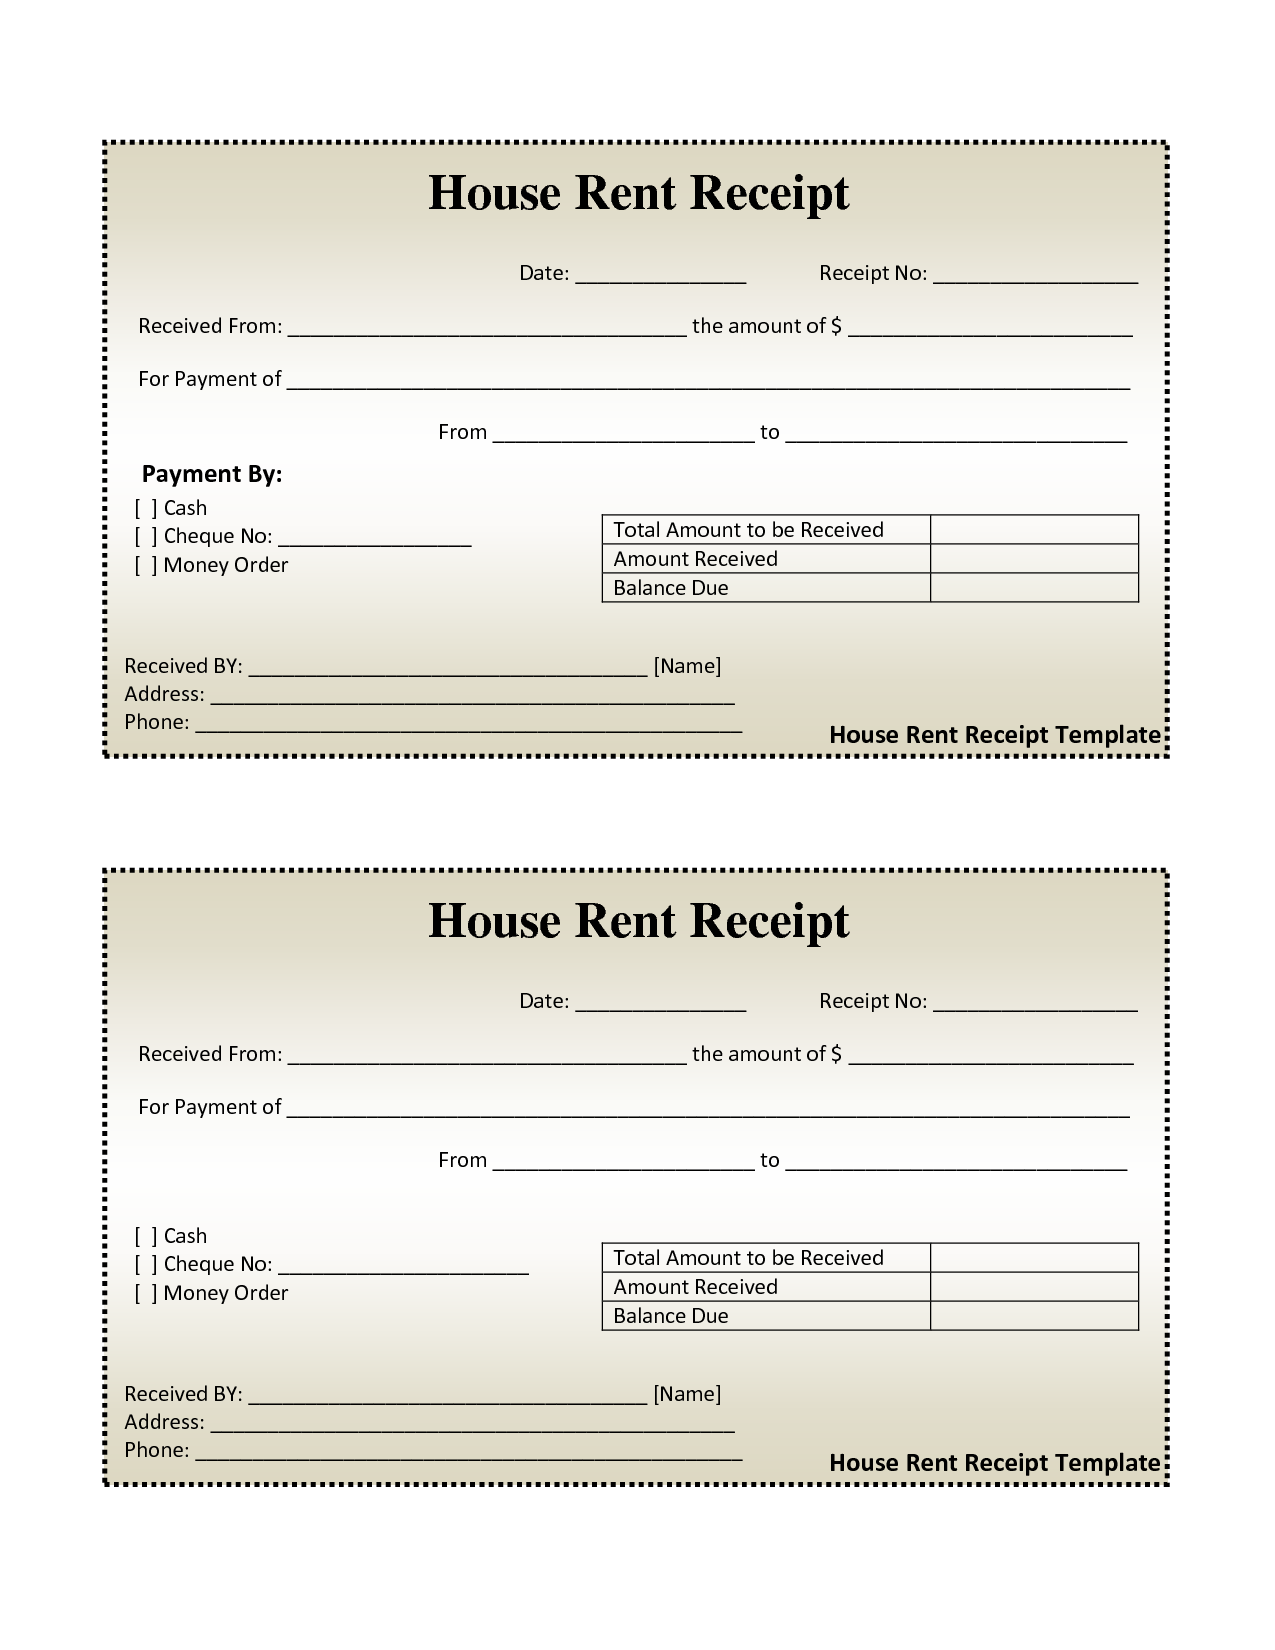 house rental invoice house rent receipt template doc house rental invoice house rent receipt template doc